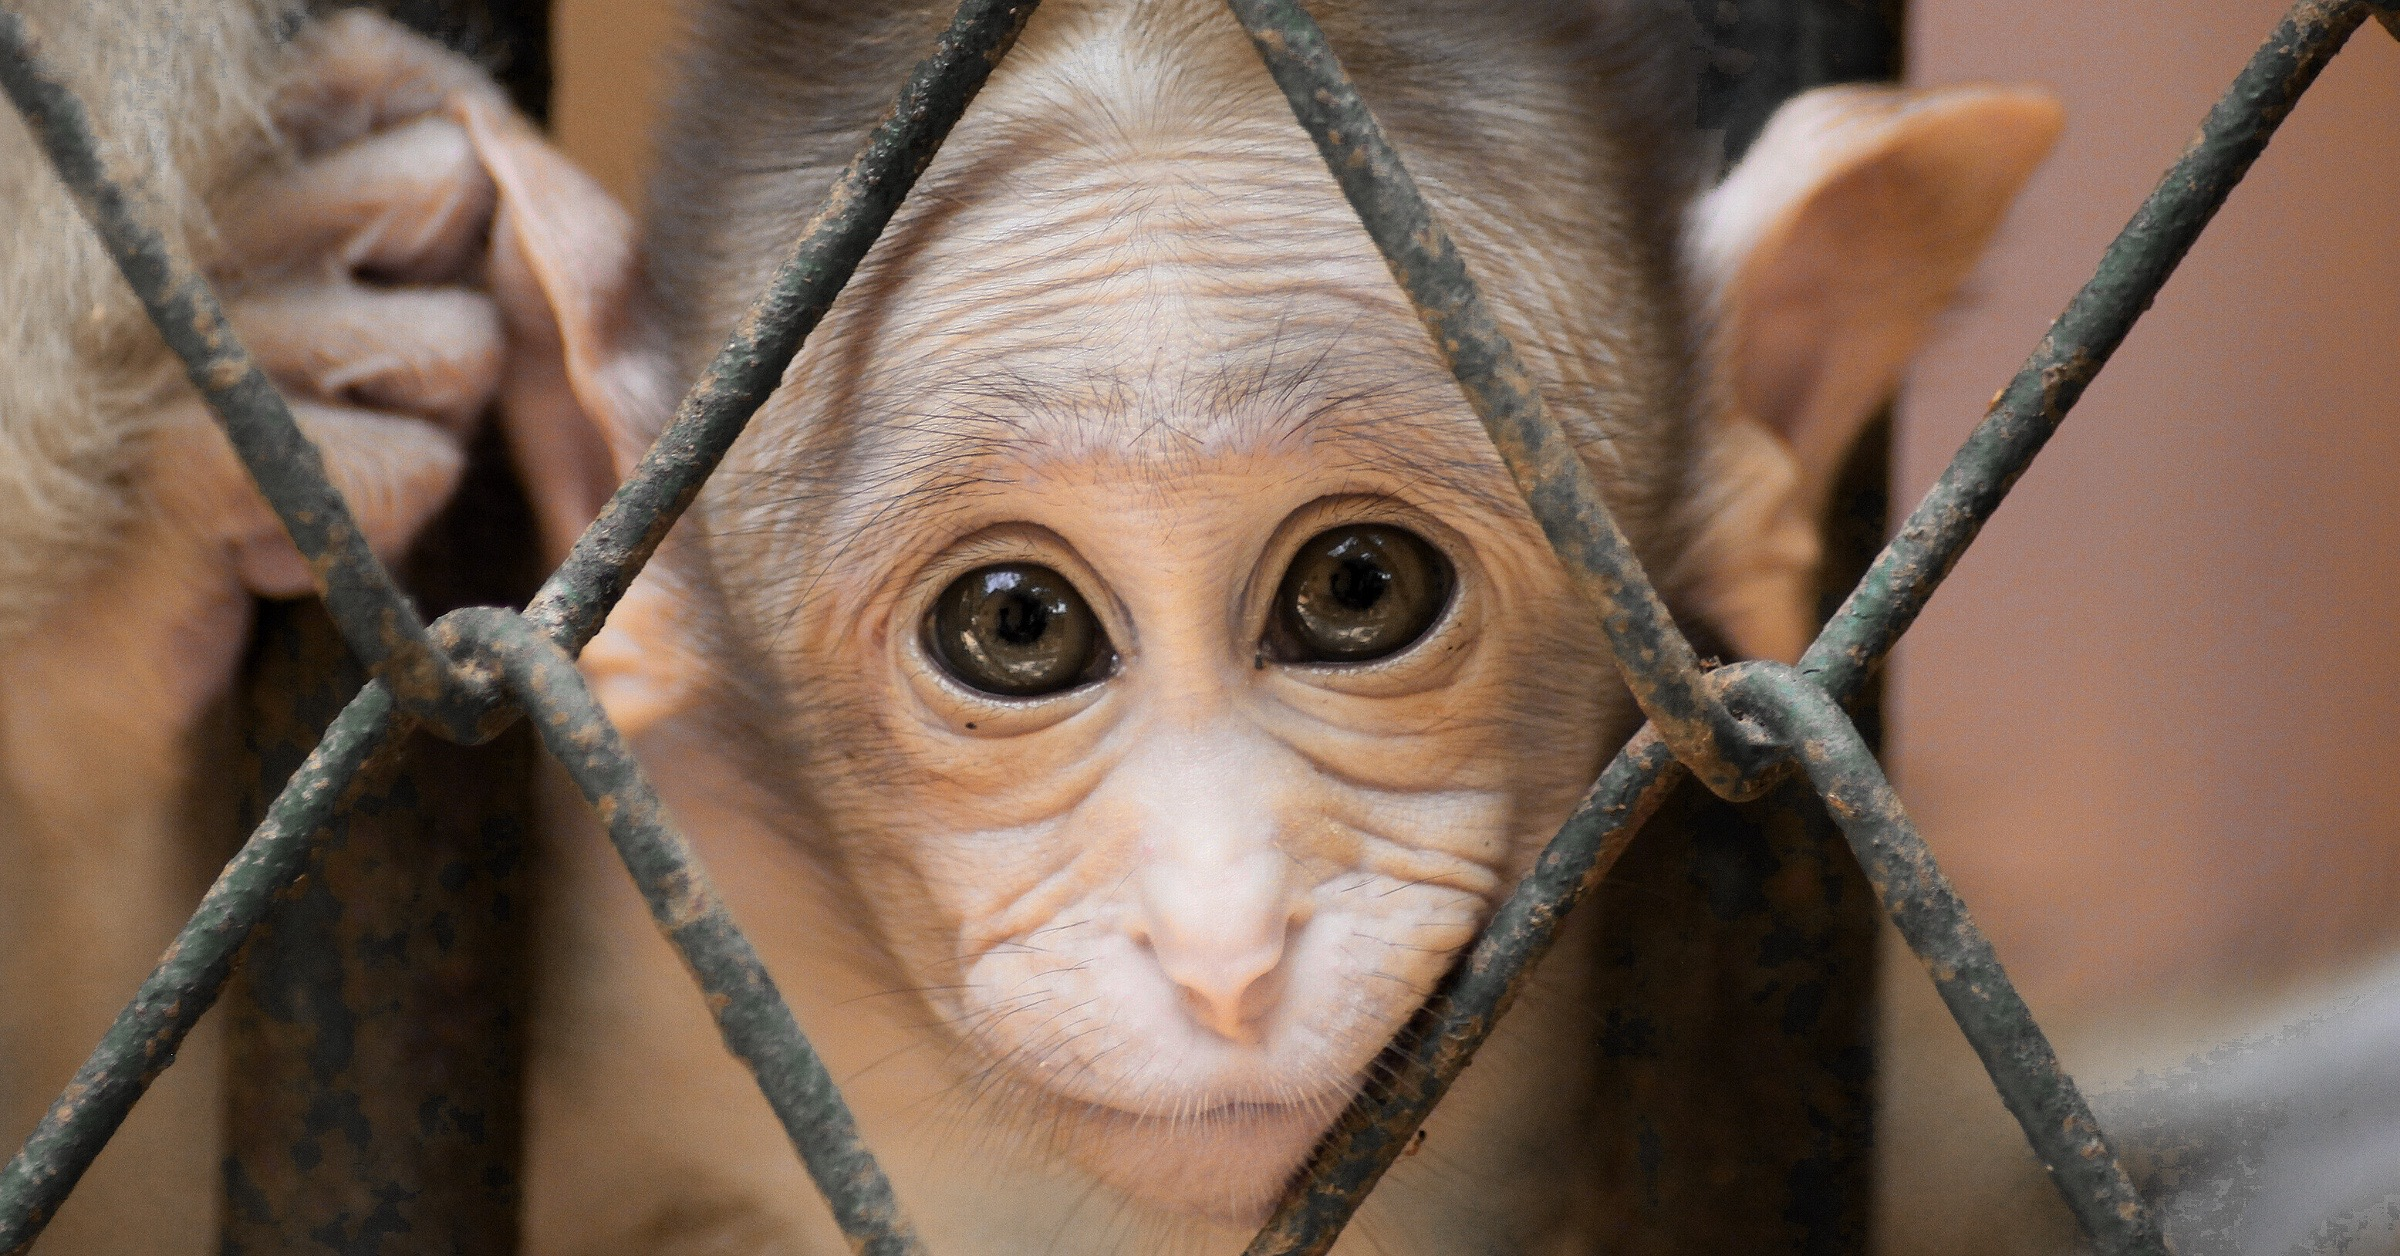 Image of a young monkey, shining eyes looking through its cage wires